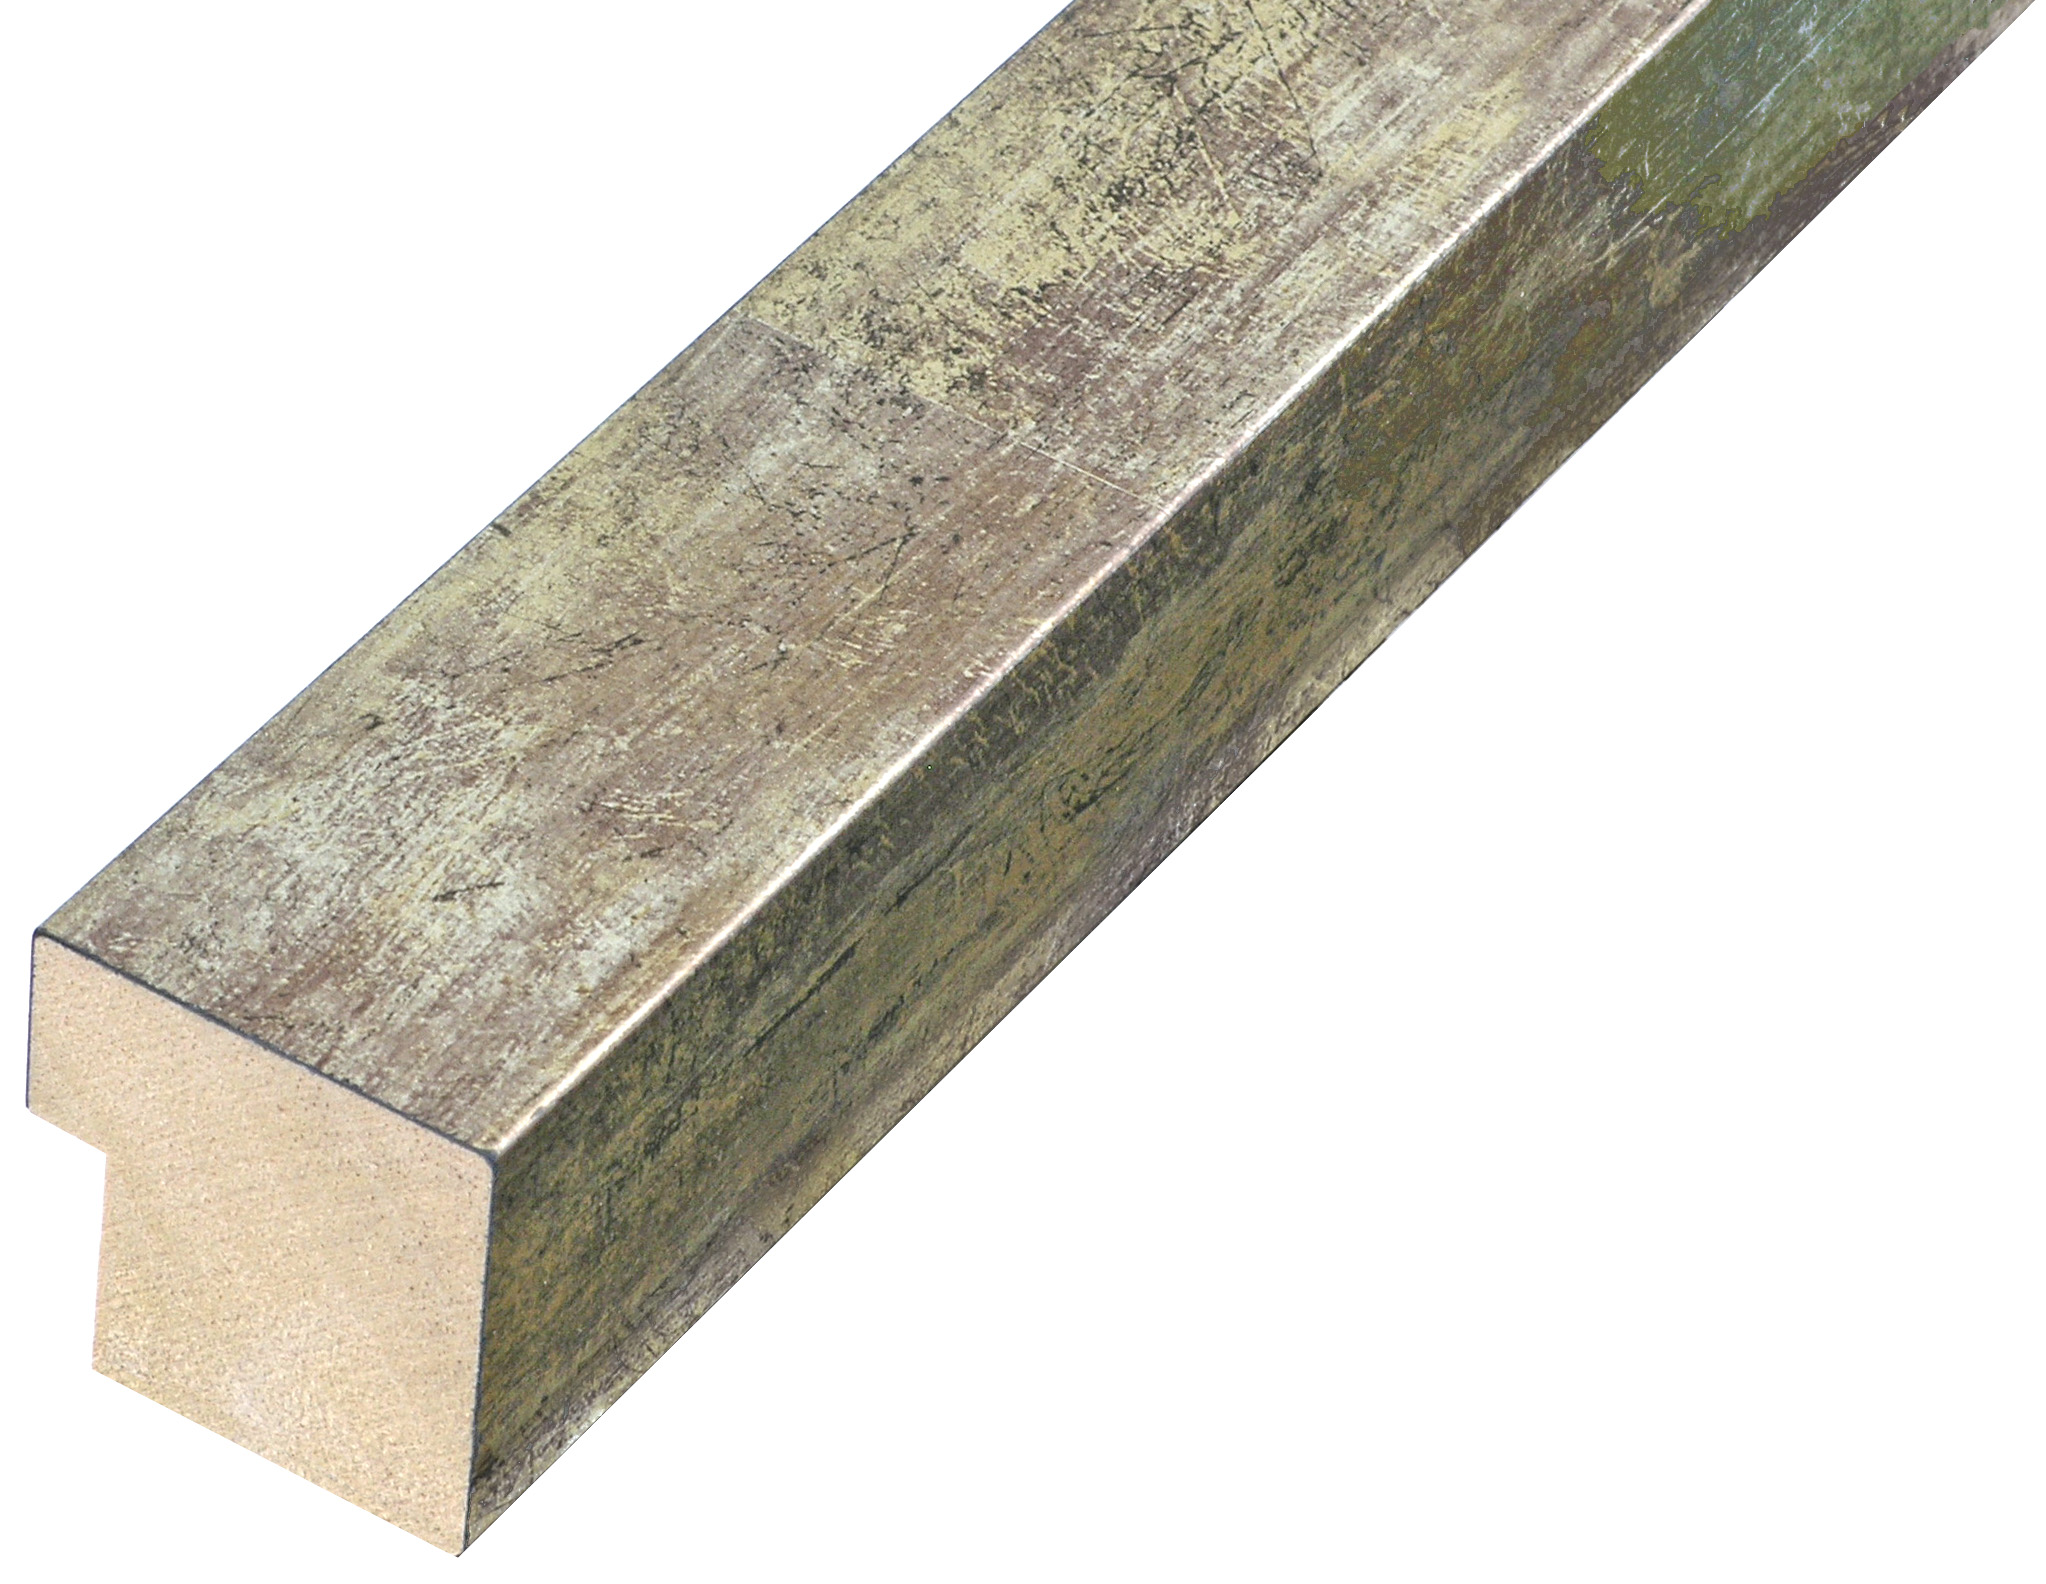 Moulding finger joint pine width 34mm height 34 - silver